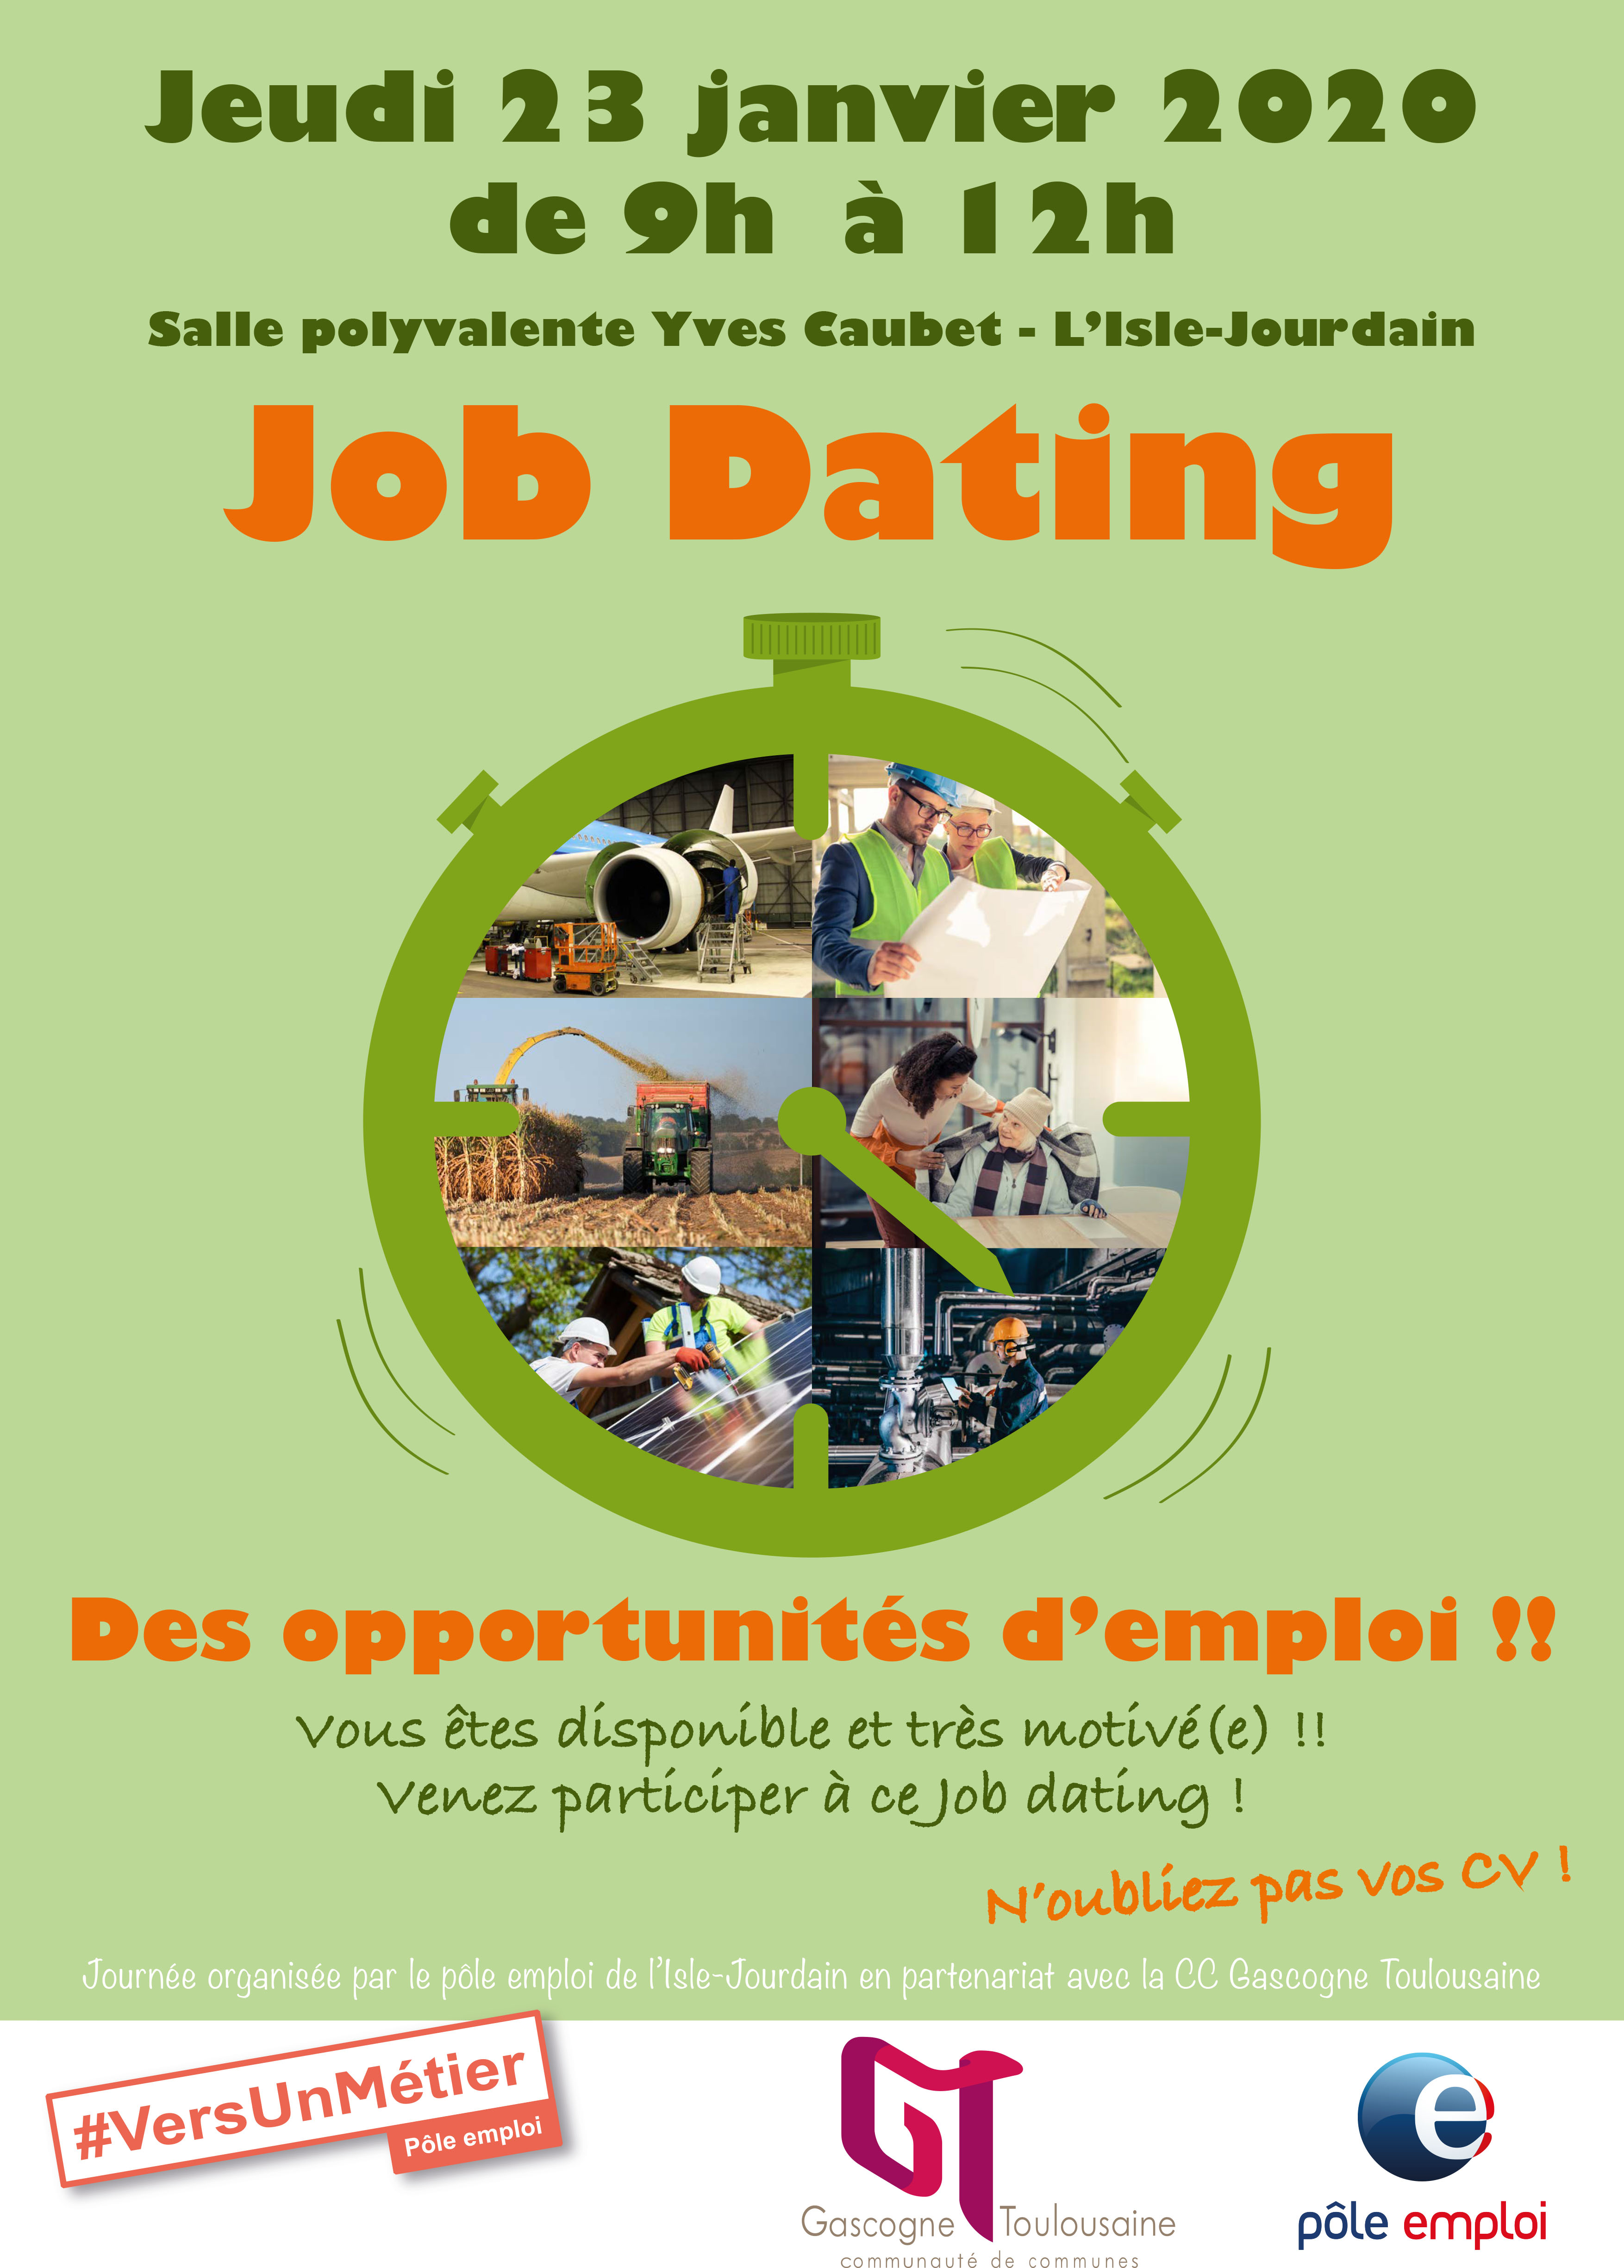 job dating l'isle jourdain